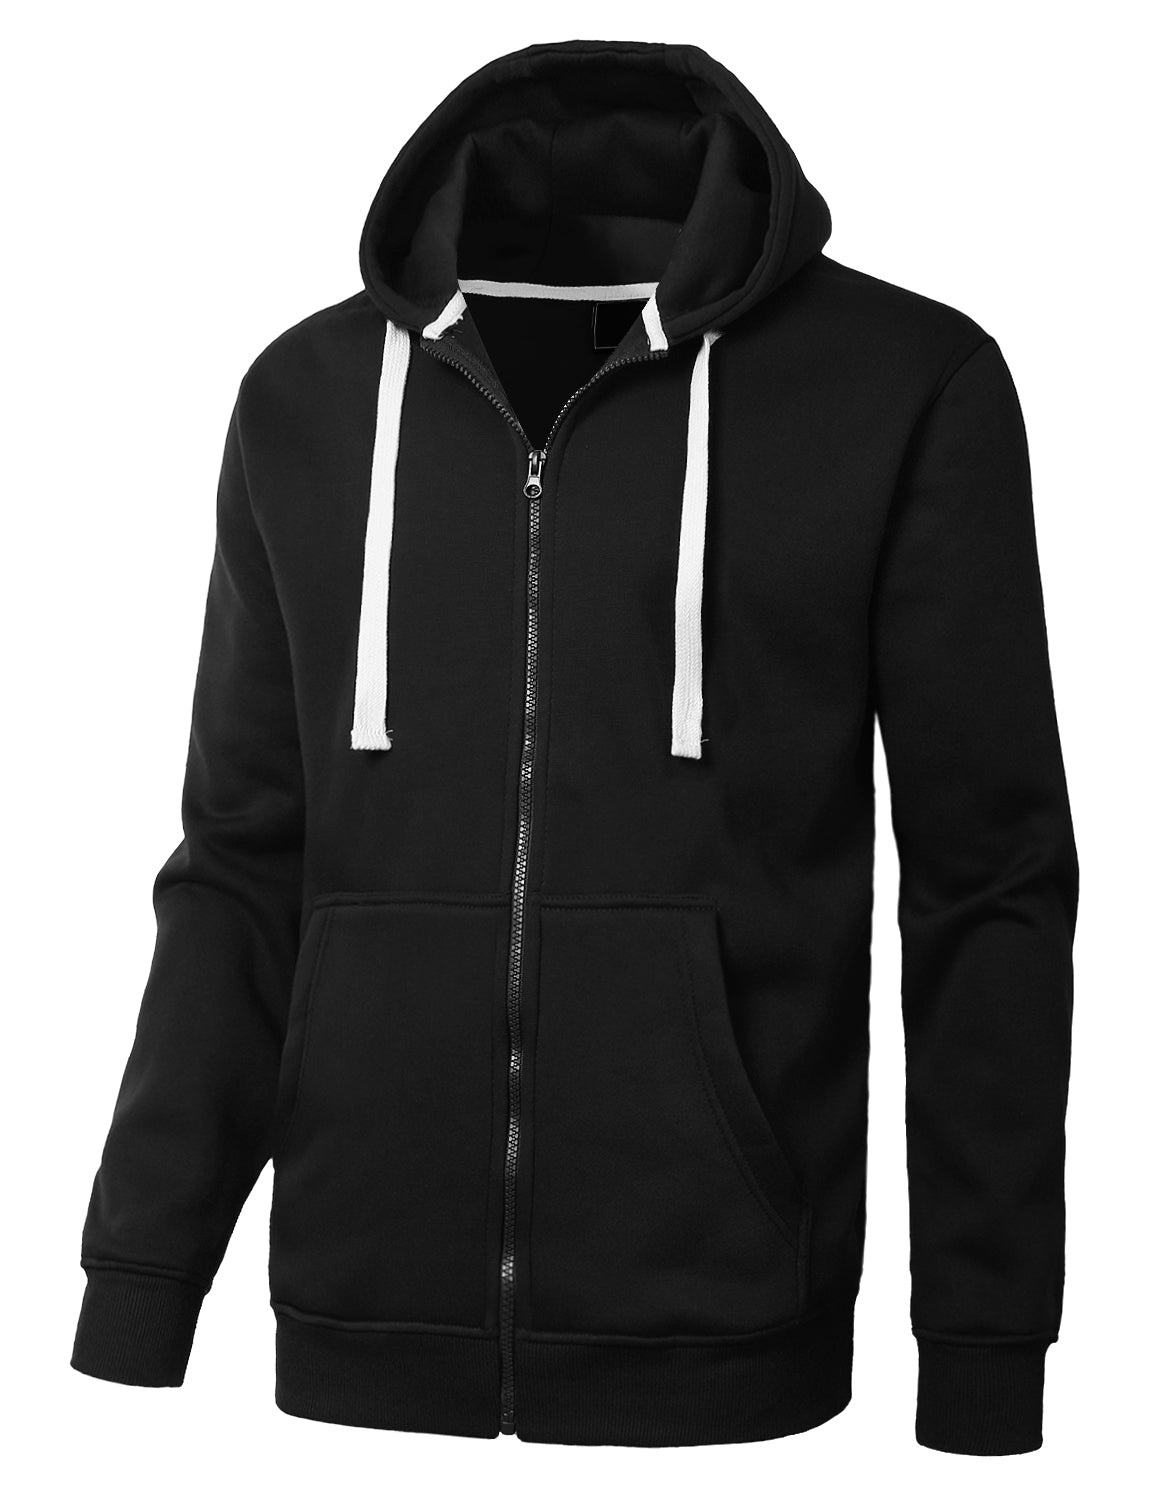 BLACK Basic Zip-Up Fleece Hoodie Jacket - URBANCREWS